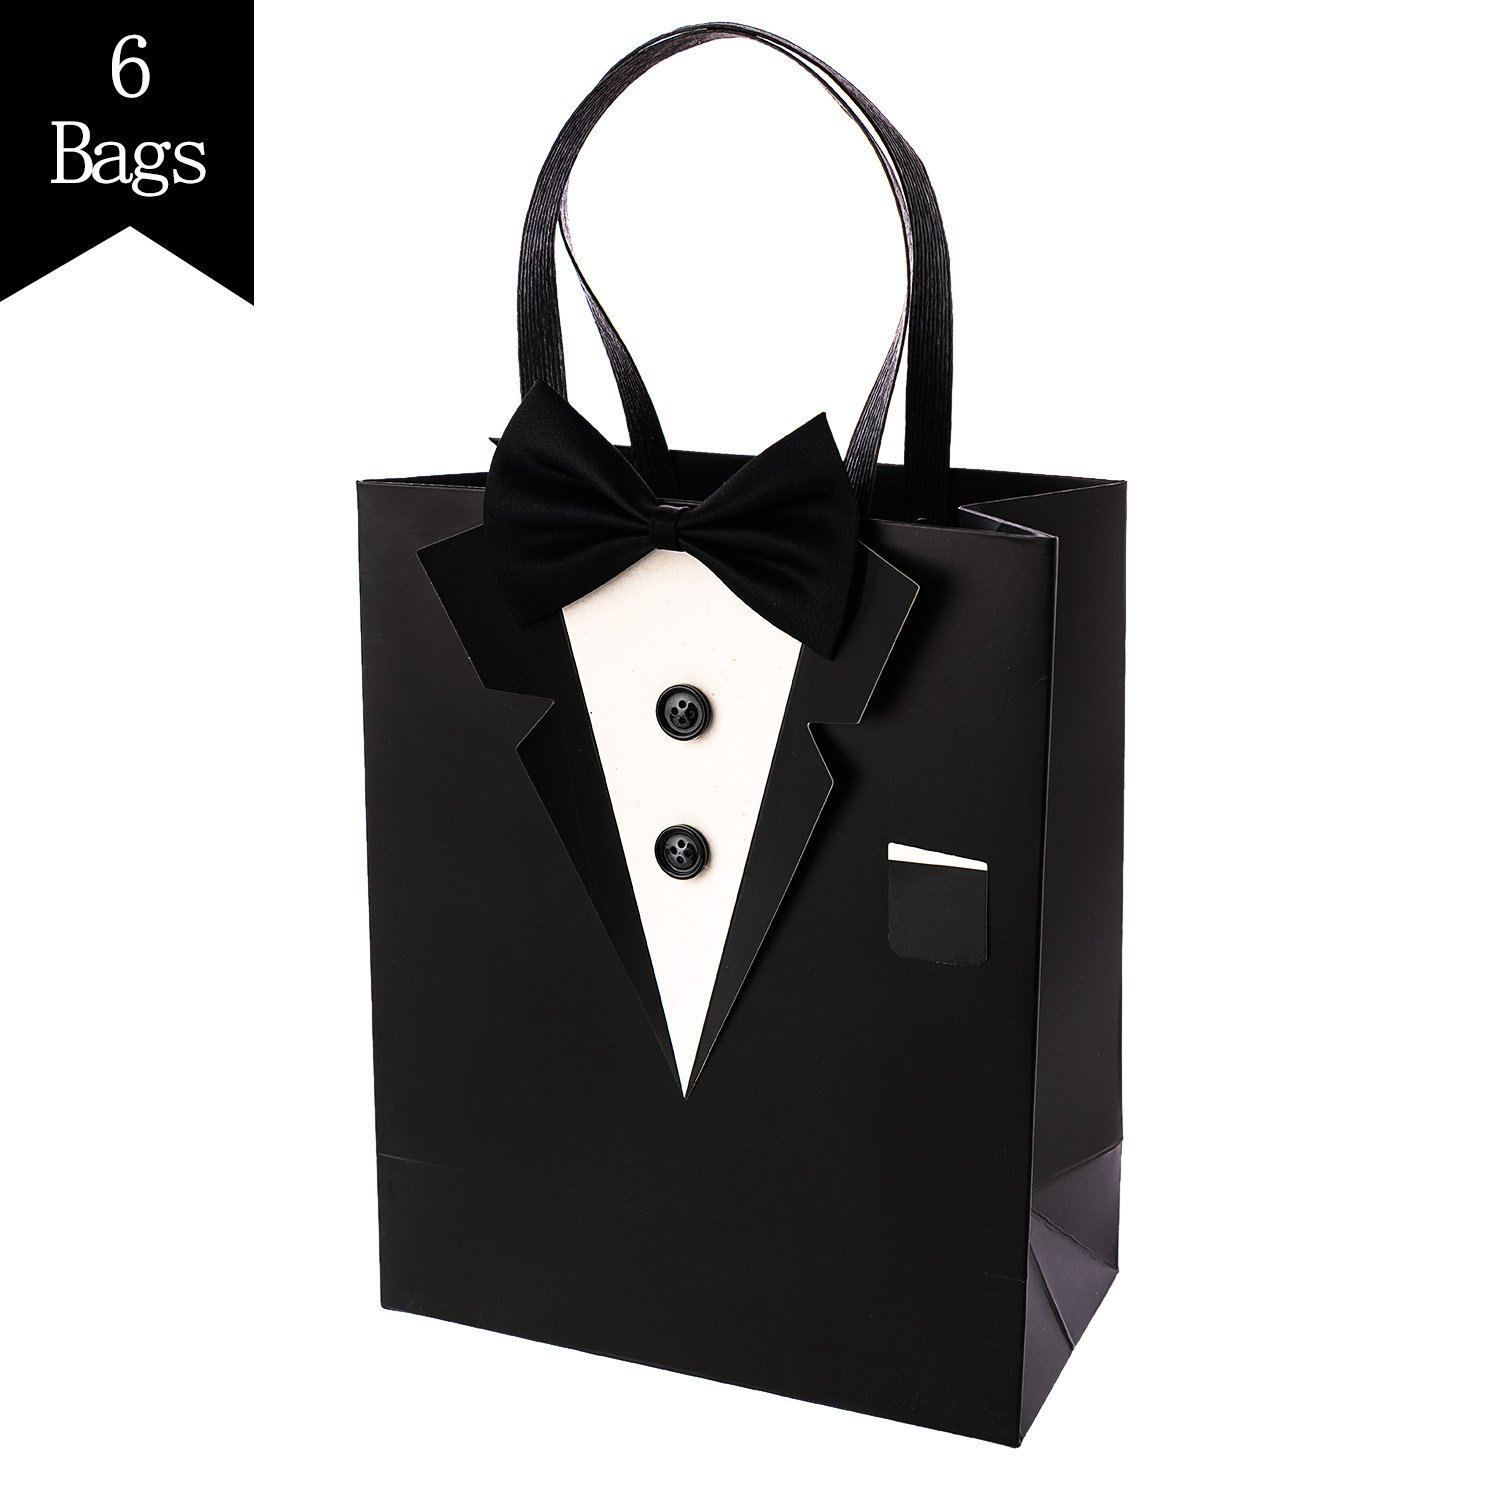 Crisky Classic Black Tuxedo Gift Bags for Groomsman Father's Birthday Anniversary Wedding Favor Bags 10''x8''x4'' Set of 6